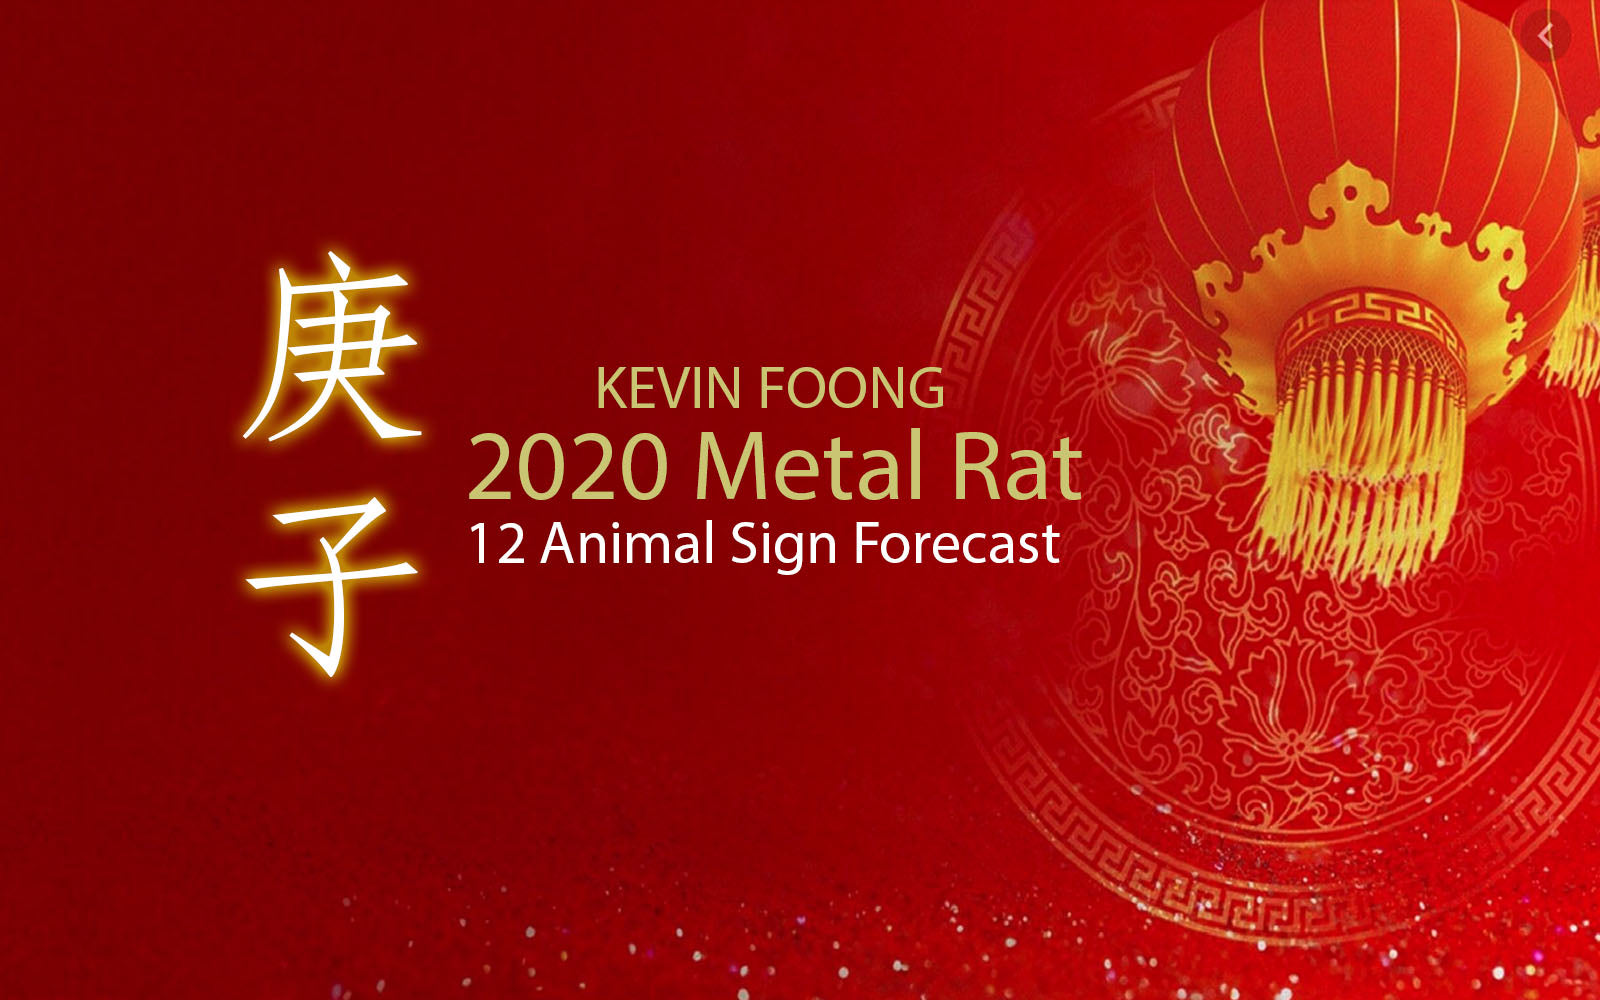 2020 Metal Rat 12 Animal Forecast